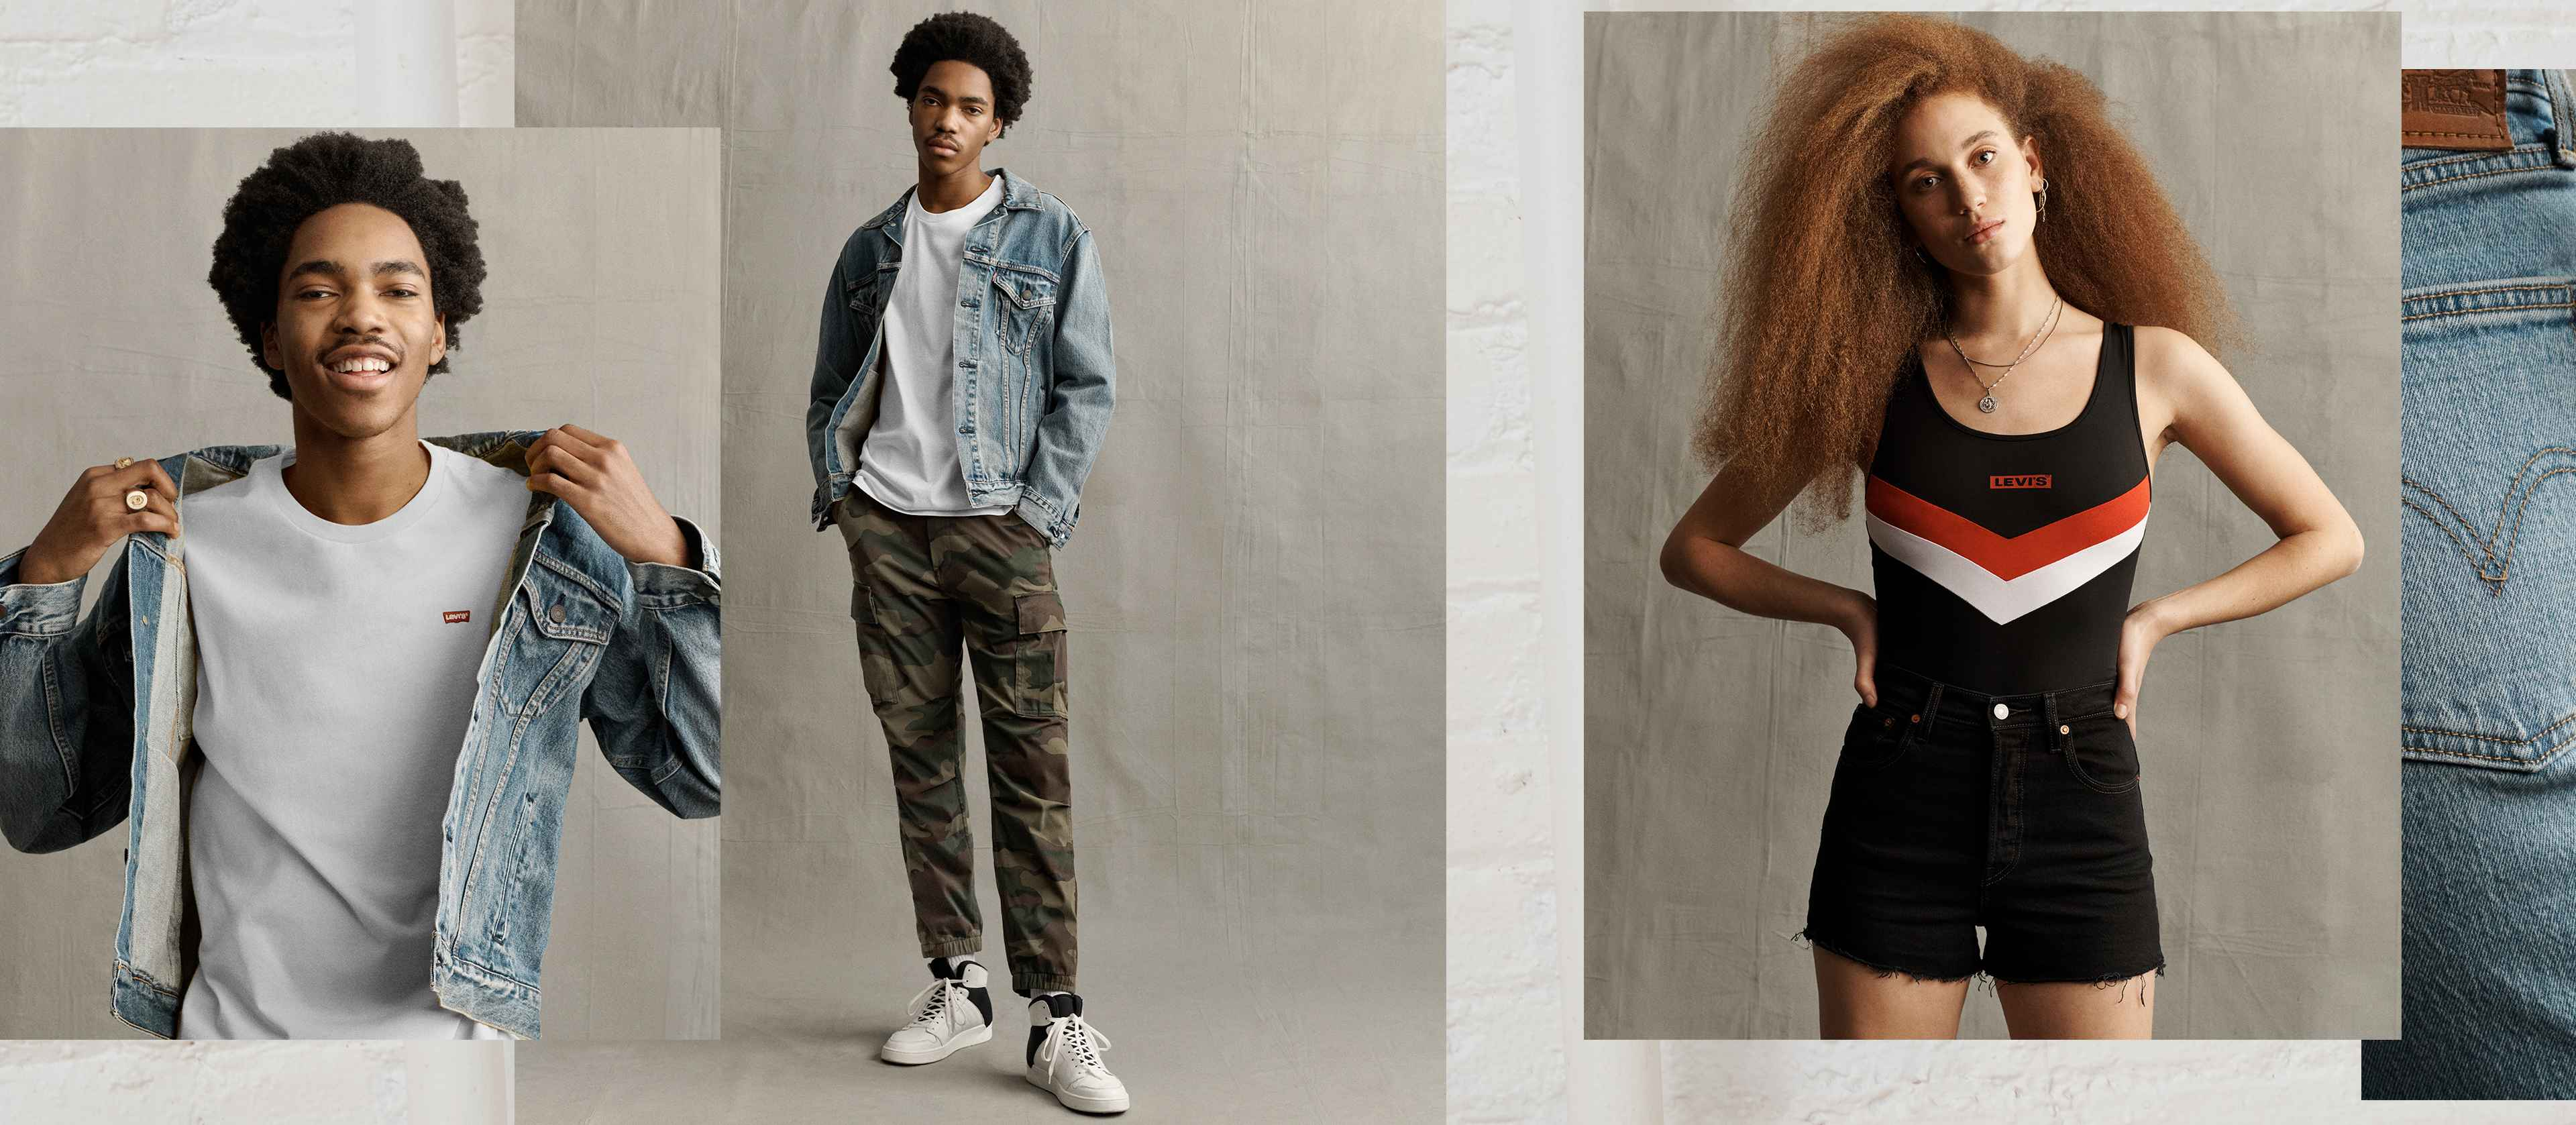 600903cac399 Jeans, Denim Jackets & Clothing | Levi's® Official Site